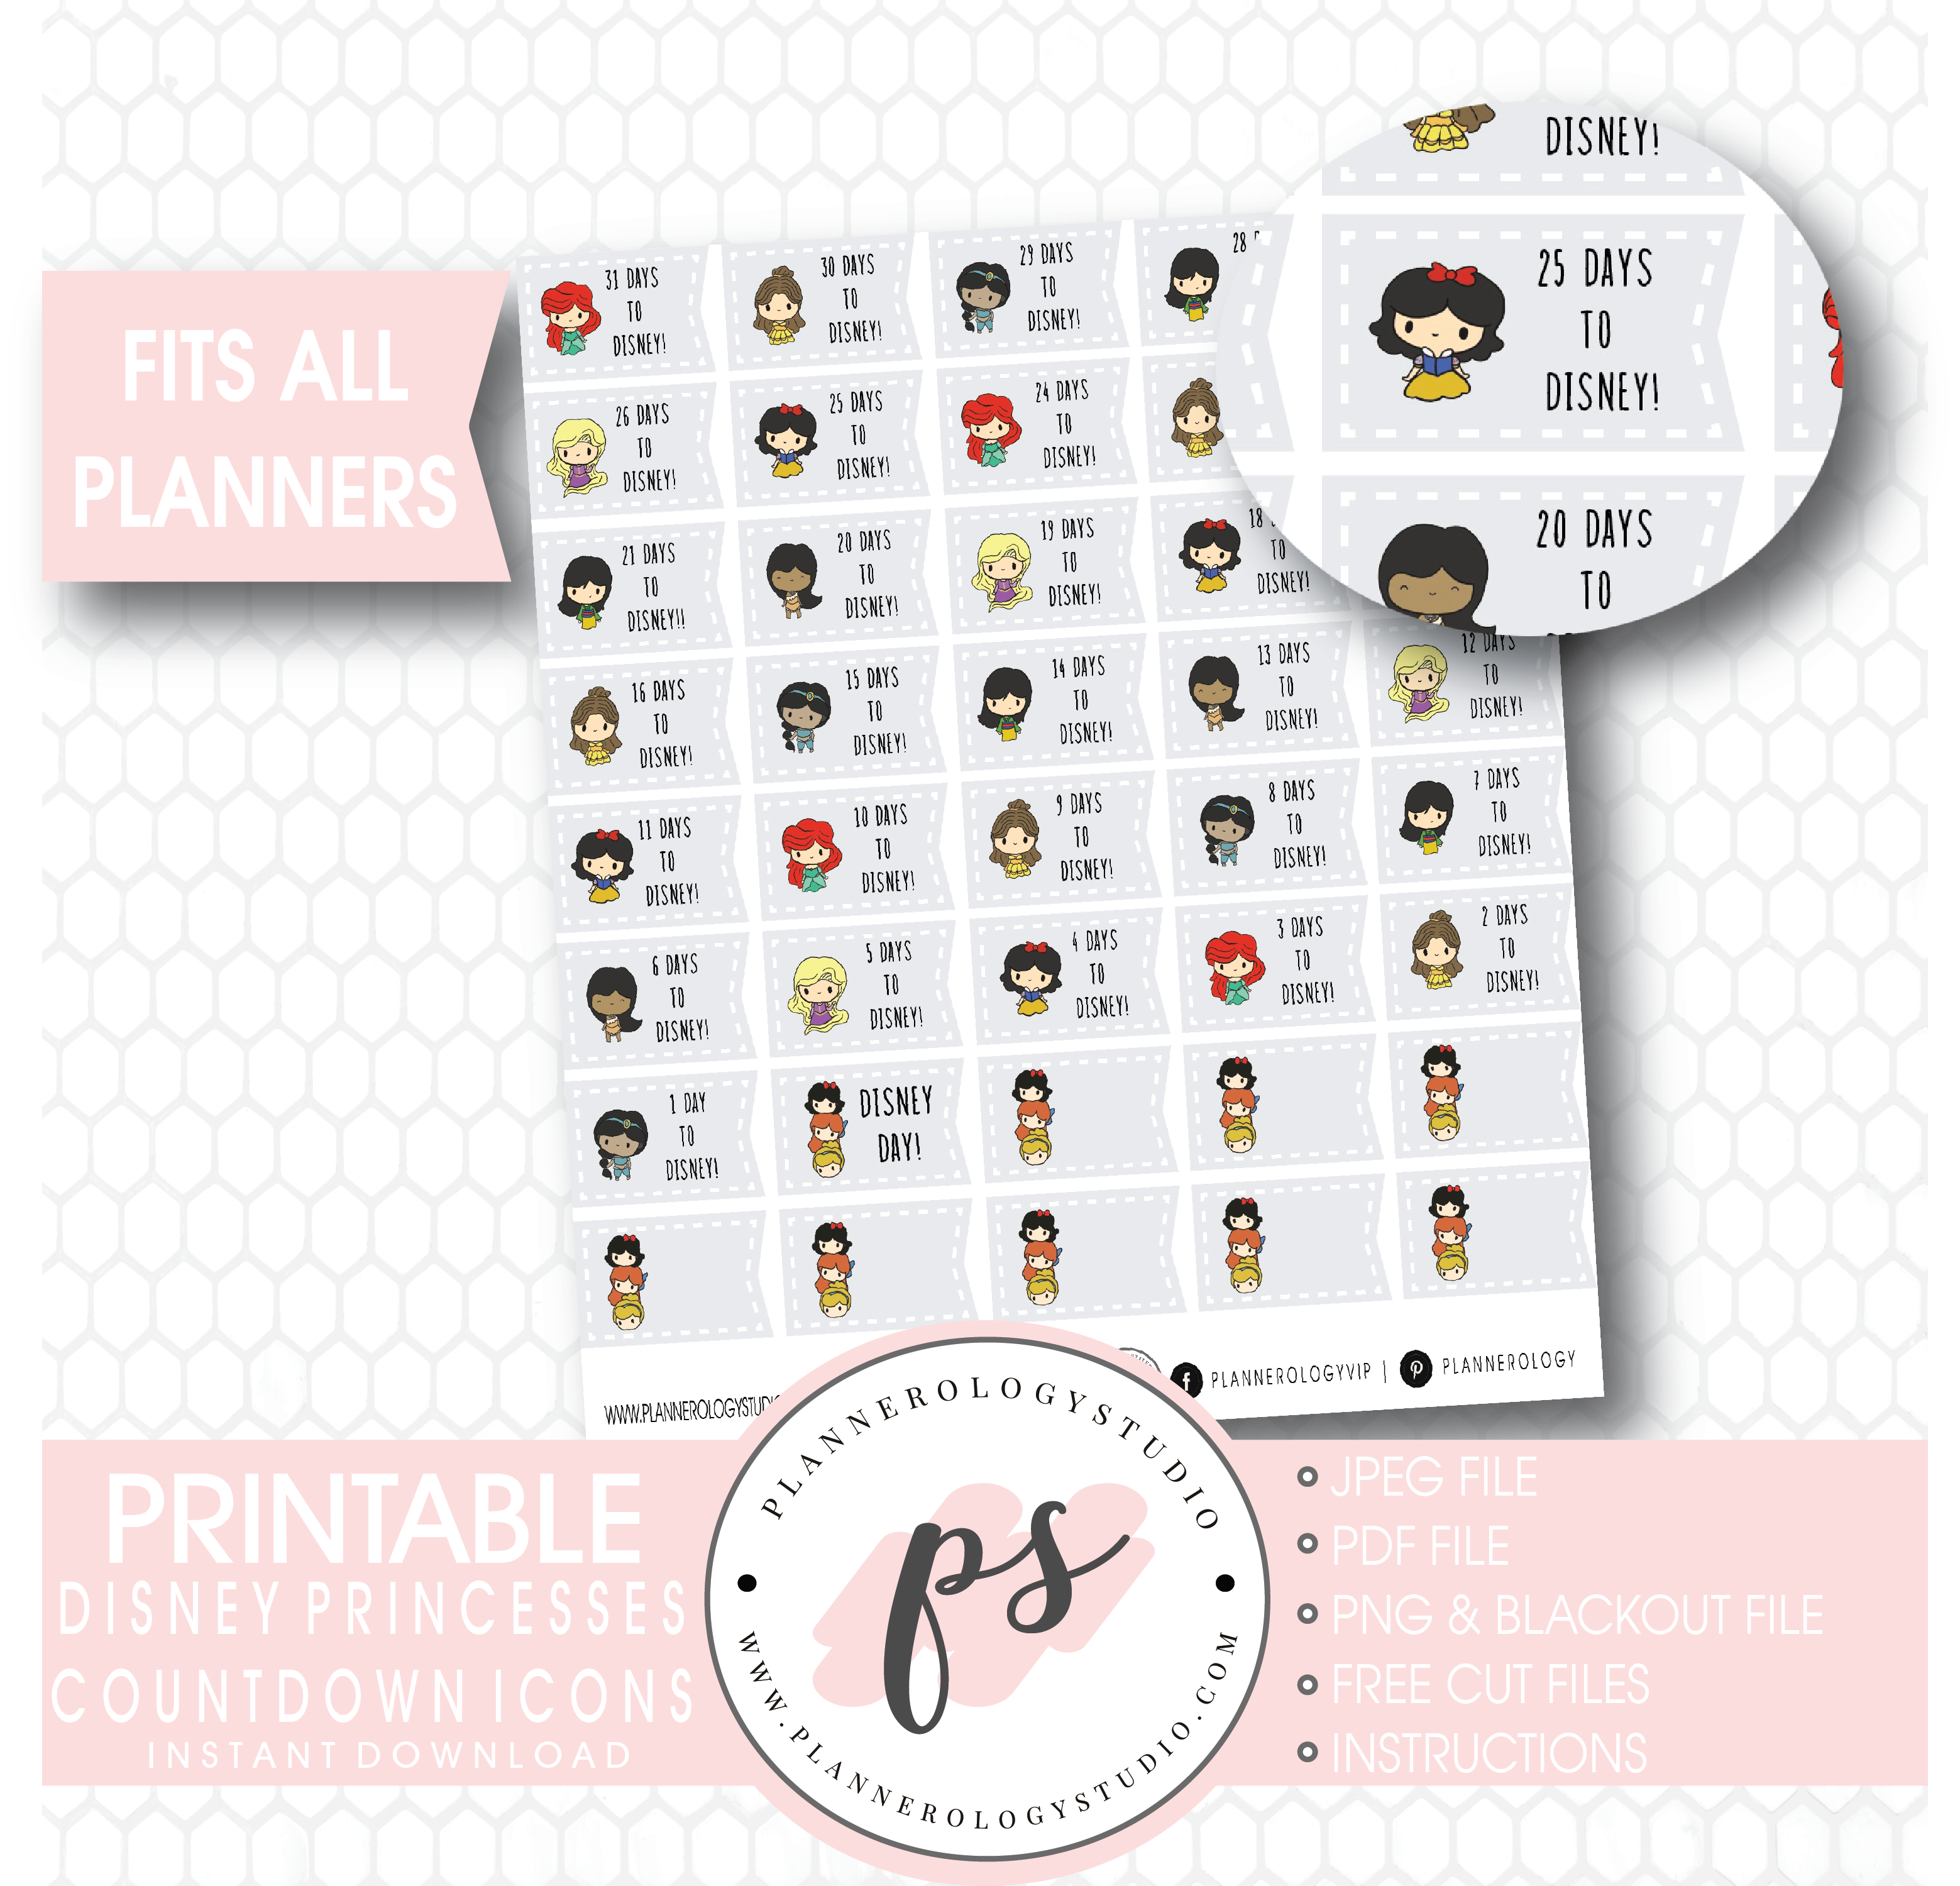 image relating to Disney Countdown Printable titled Disney Princess Countdown Planner Icons Electronic Printable Planner Stickers